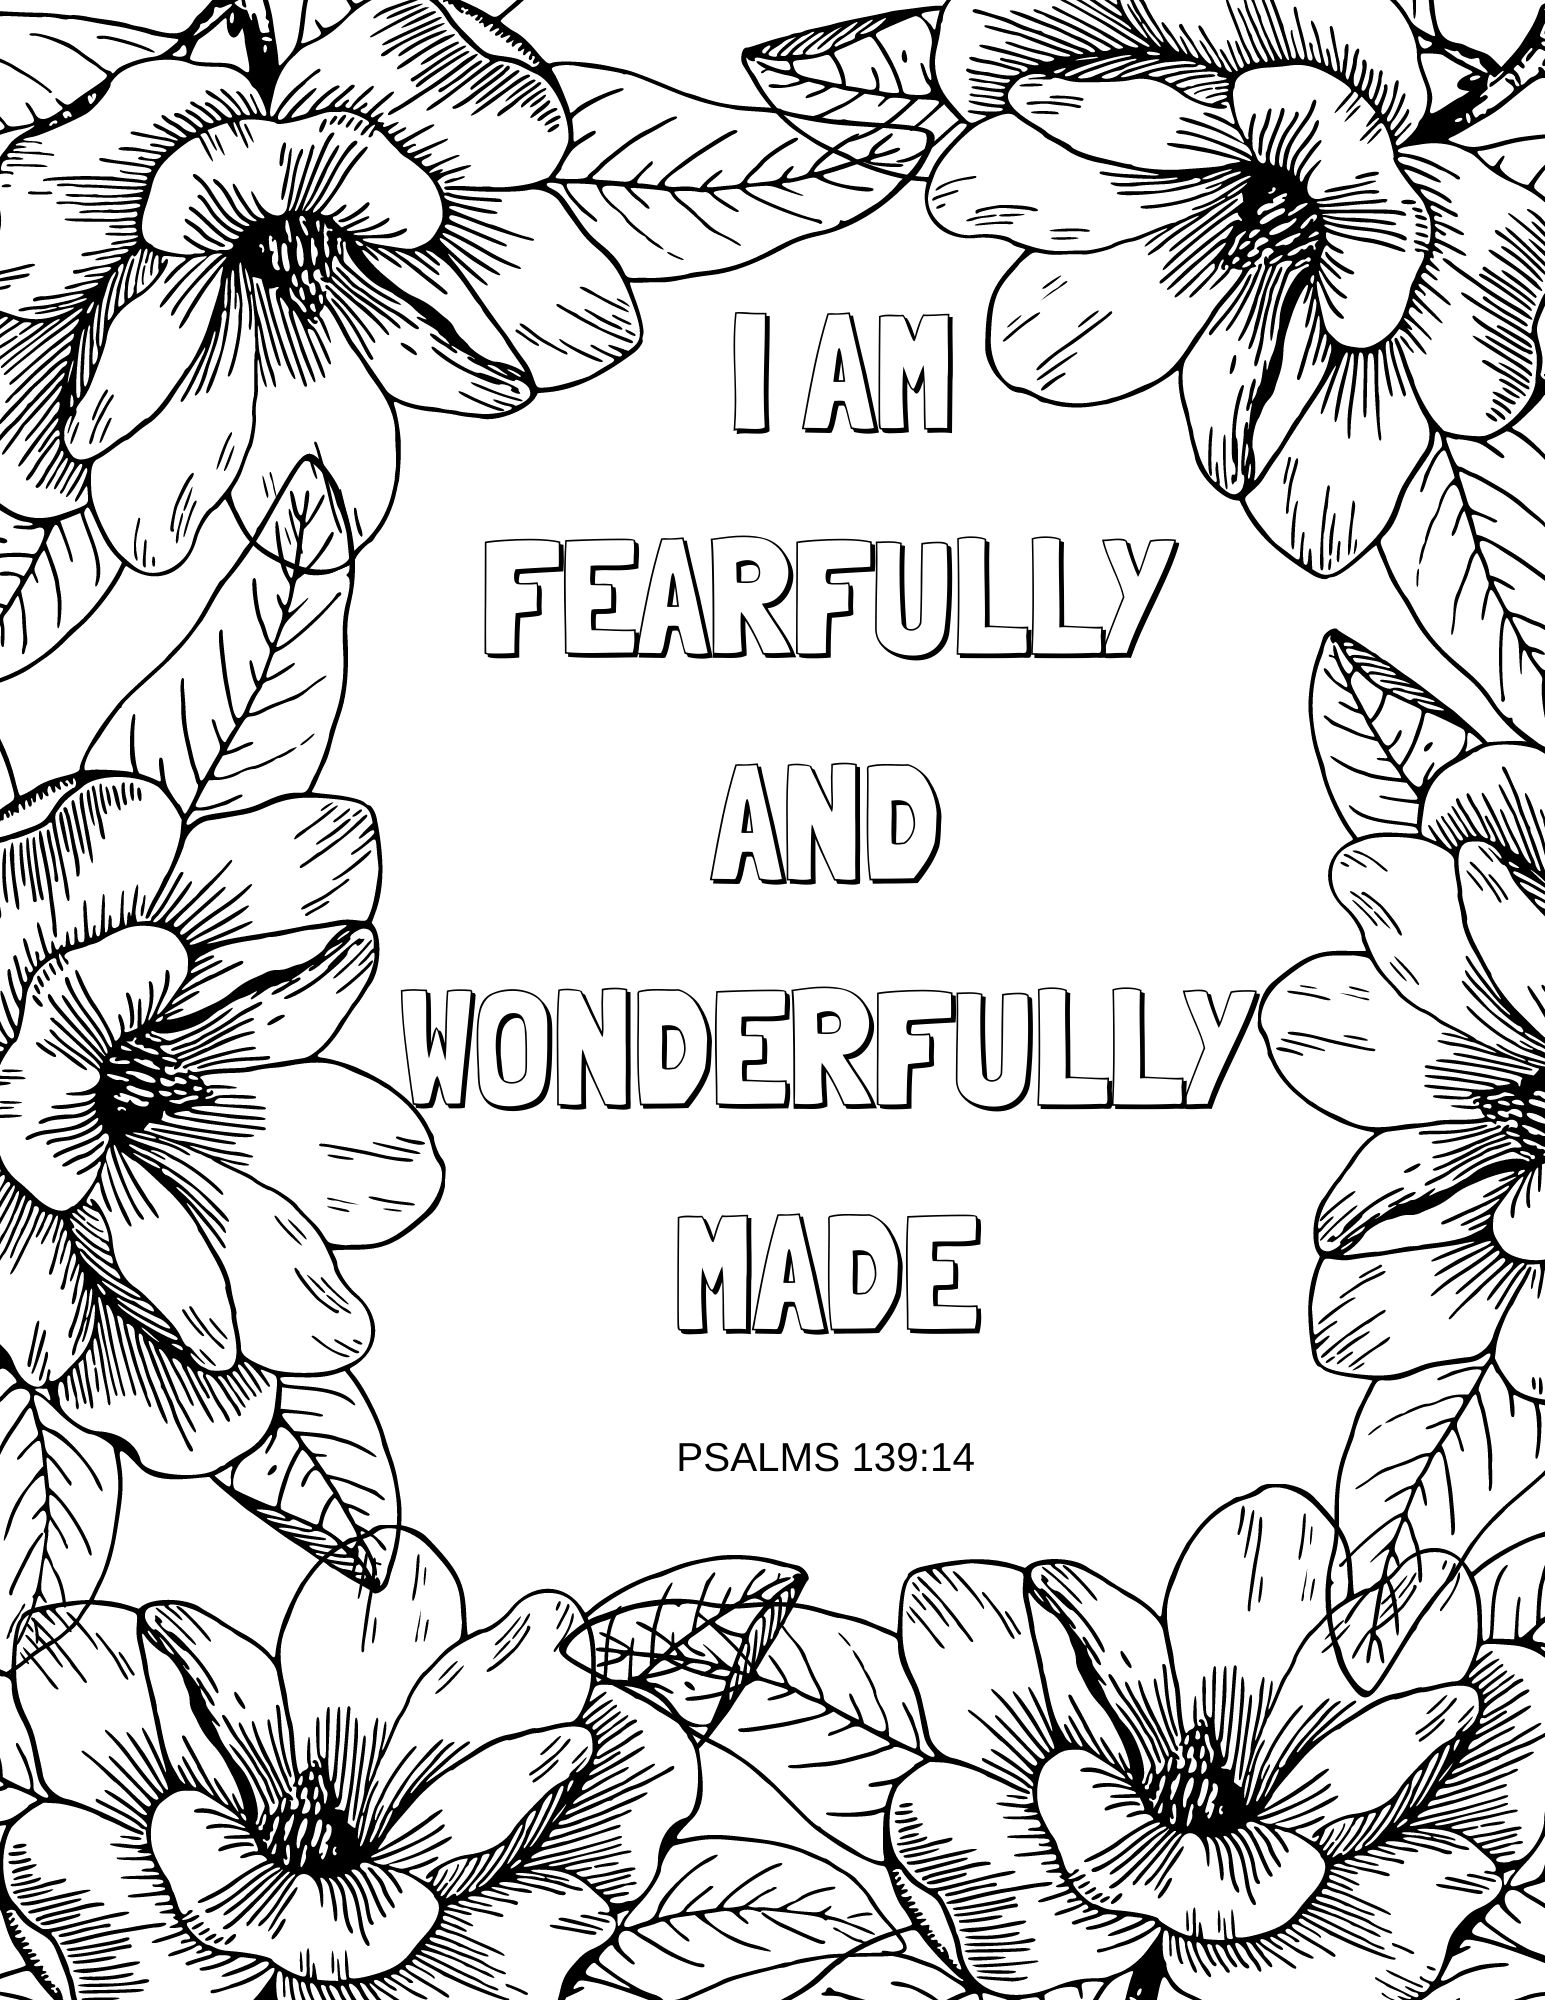 free printable bible coloring pages bible coloring pages teach your kids through coloring printable free bible coloring pages